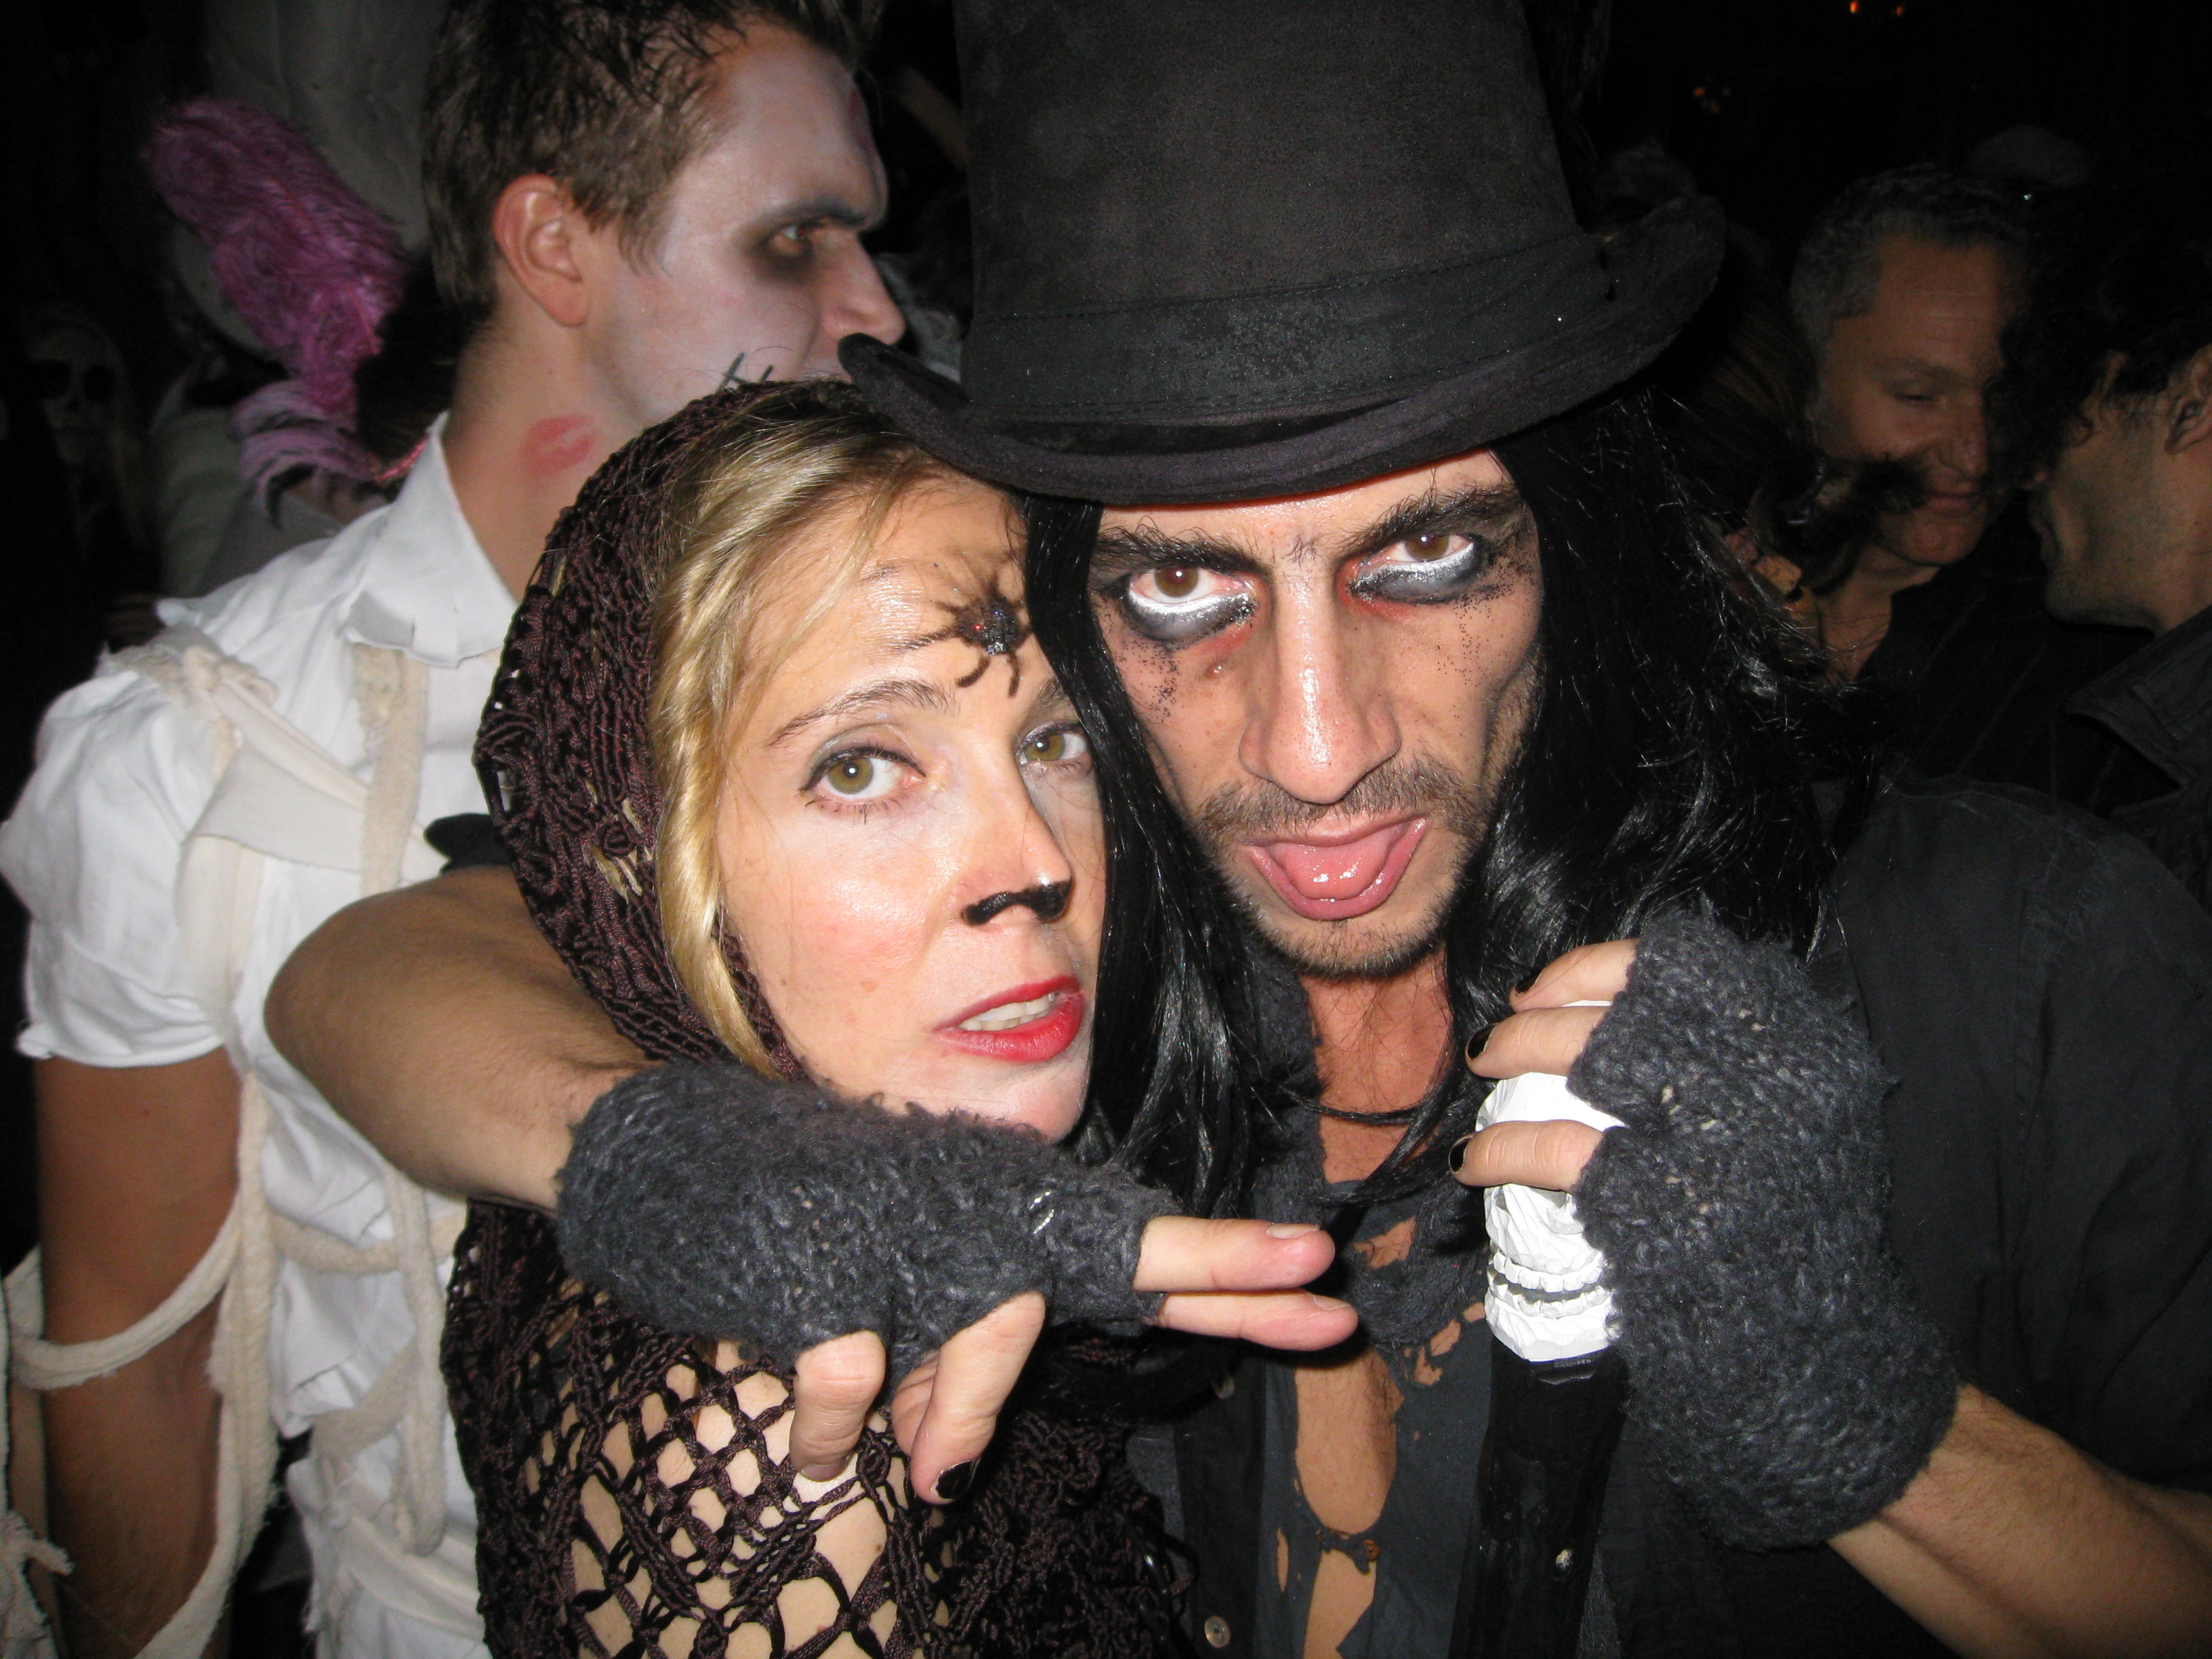 HAPPY HALLOWEEN NYC! THE REAL SEXY ONES!!! |